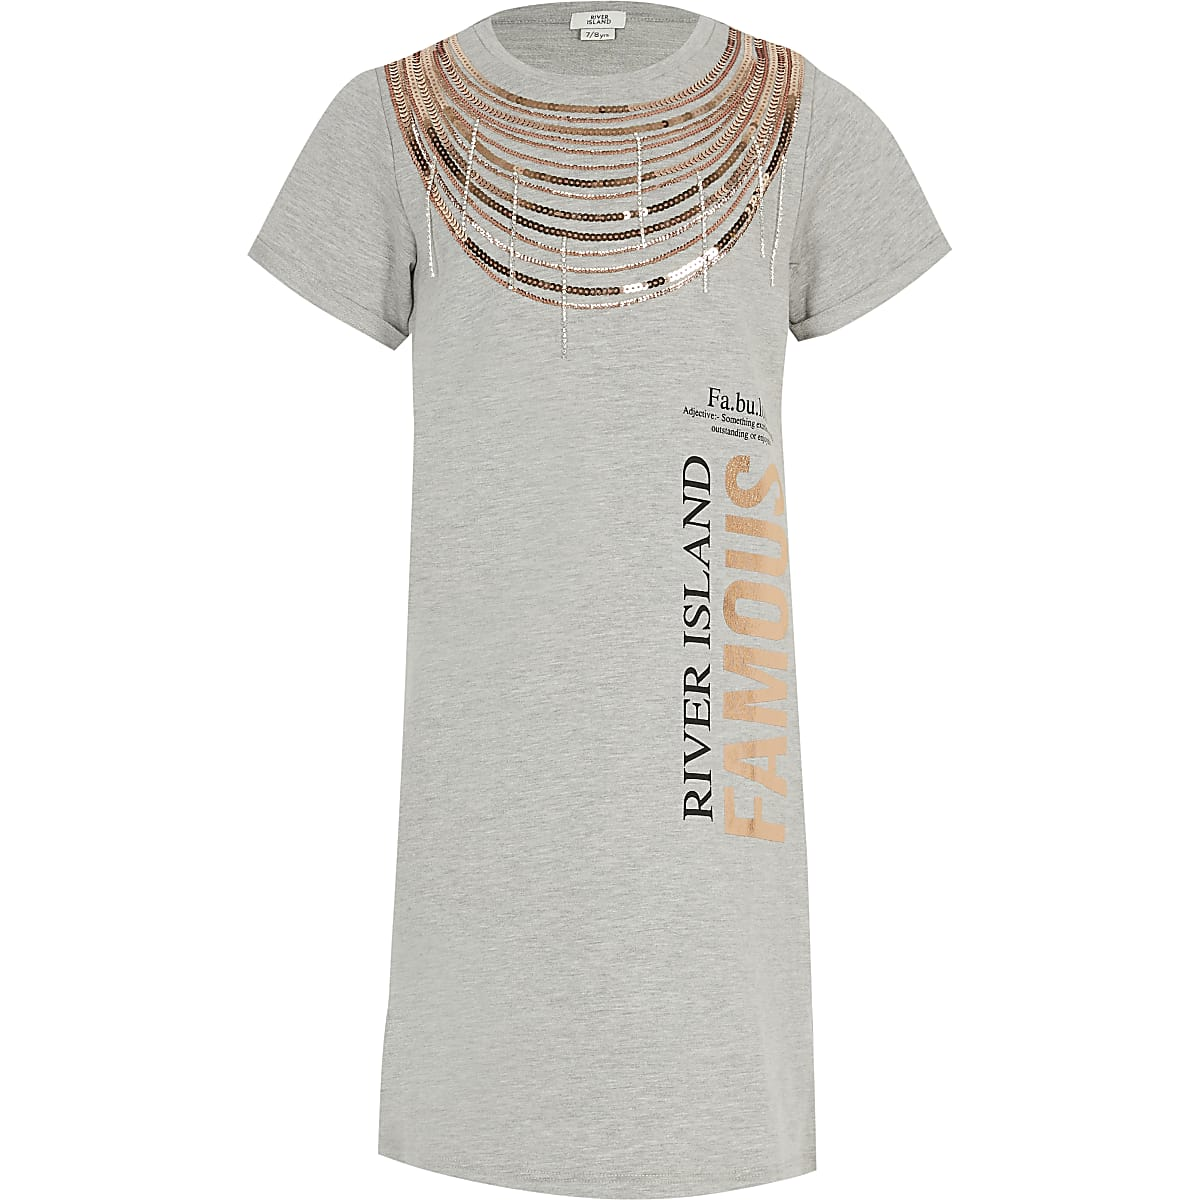 Girls grey 'Famous' embellished T-shirt dress